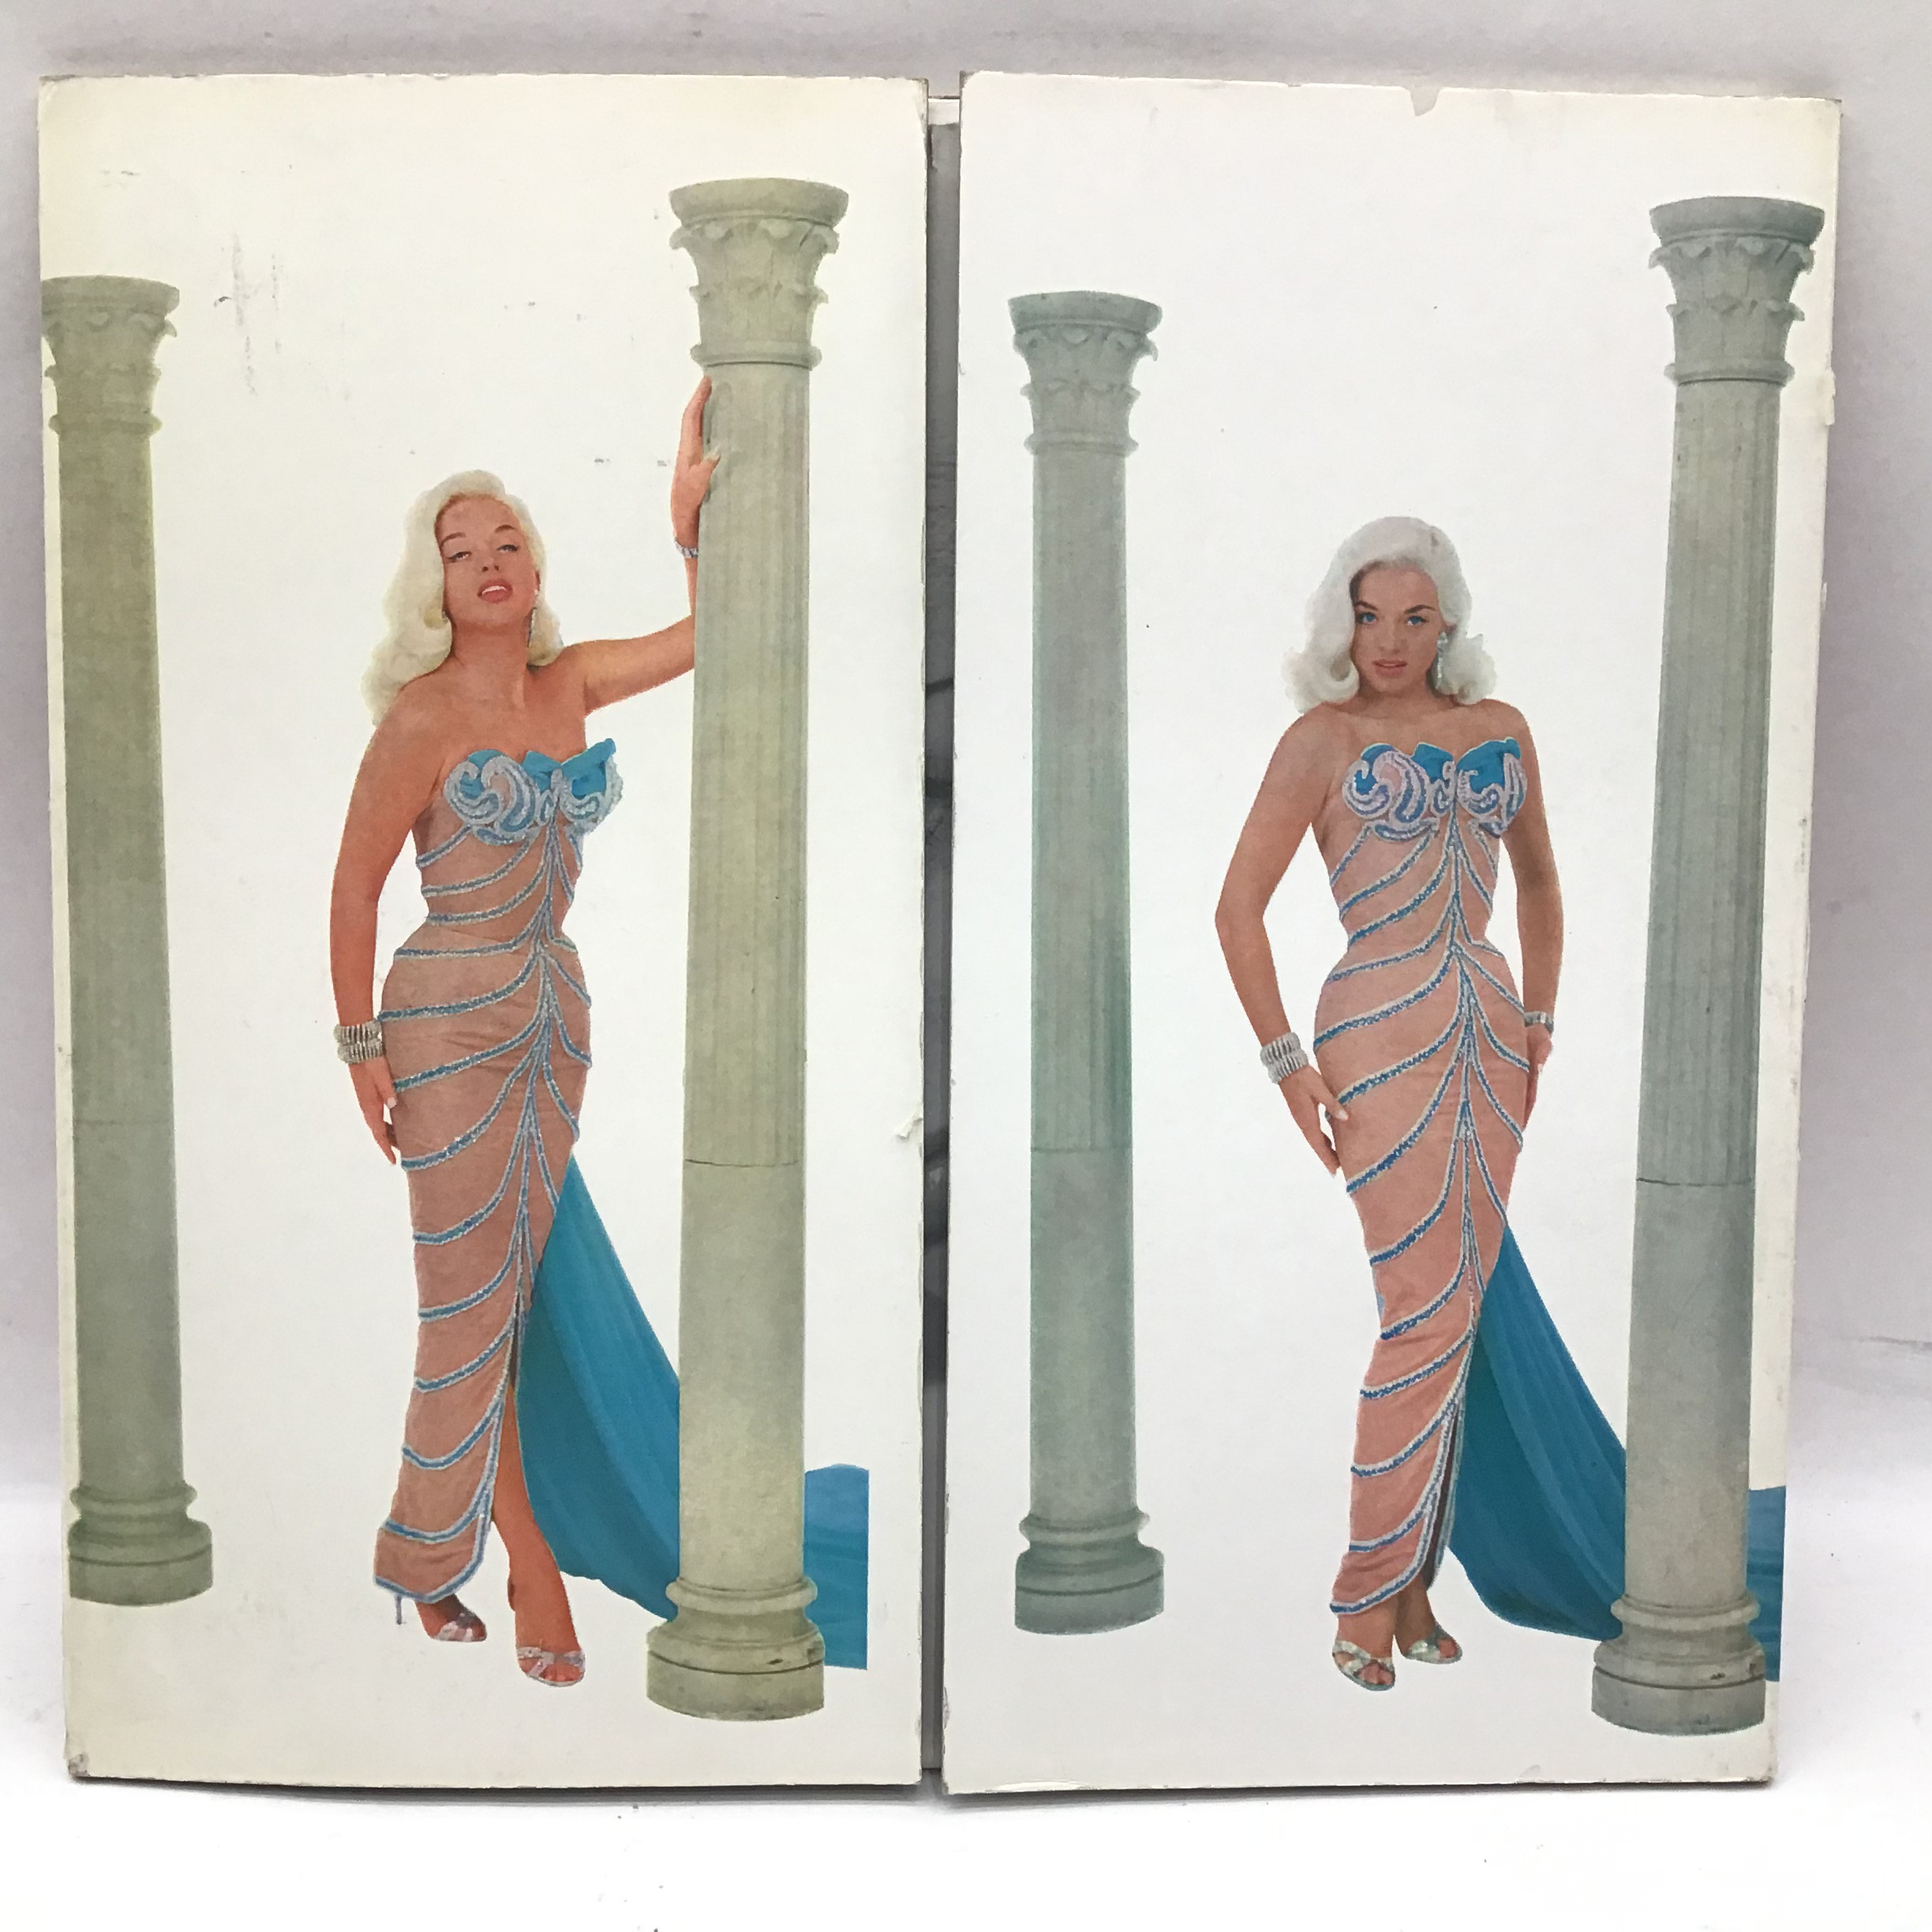 DIANA DORS vinyl lp on Pye NPL 18044. This ?Swingin? Dors? album is pressed on a red coloured